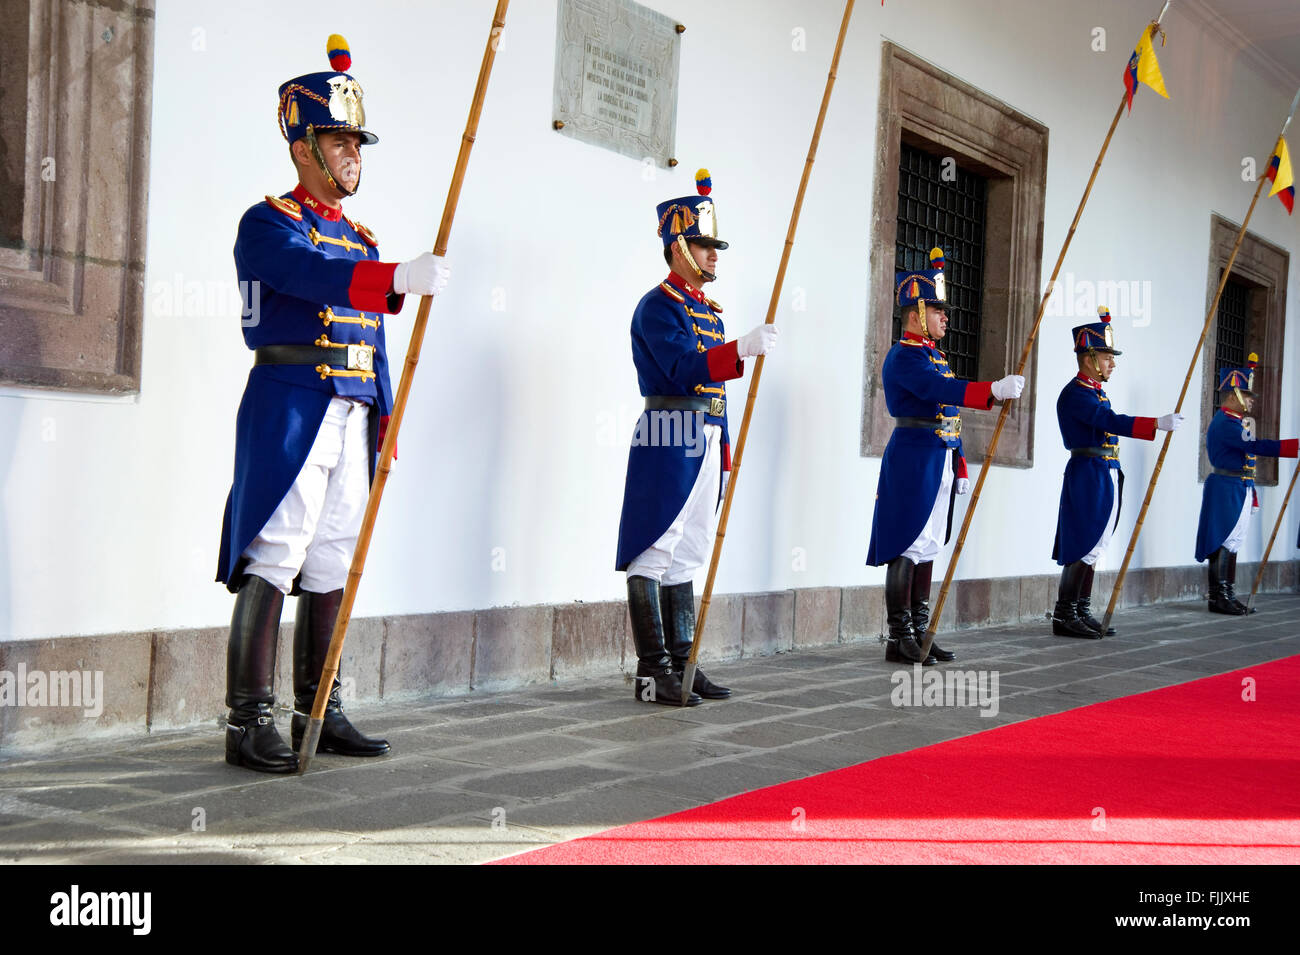 Palace Guard at the Presidential Palace in Quito, Ecuador - Stock Image